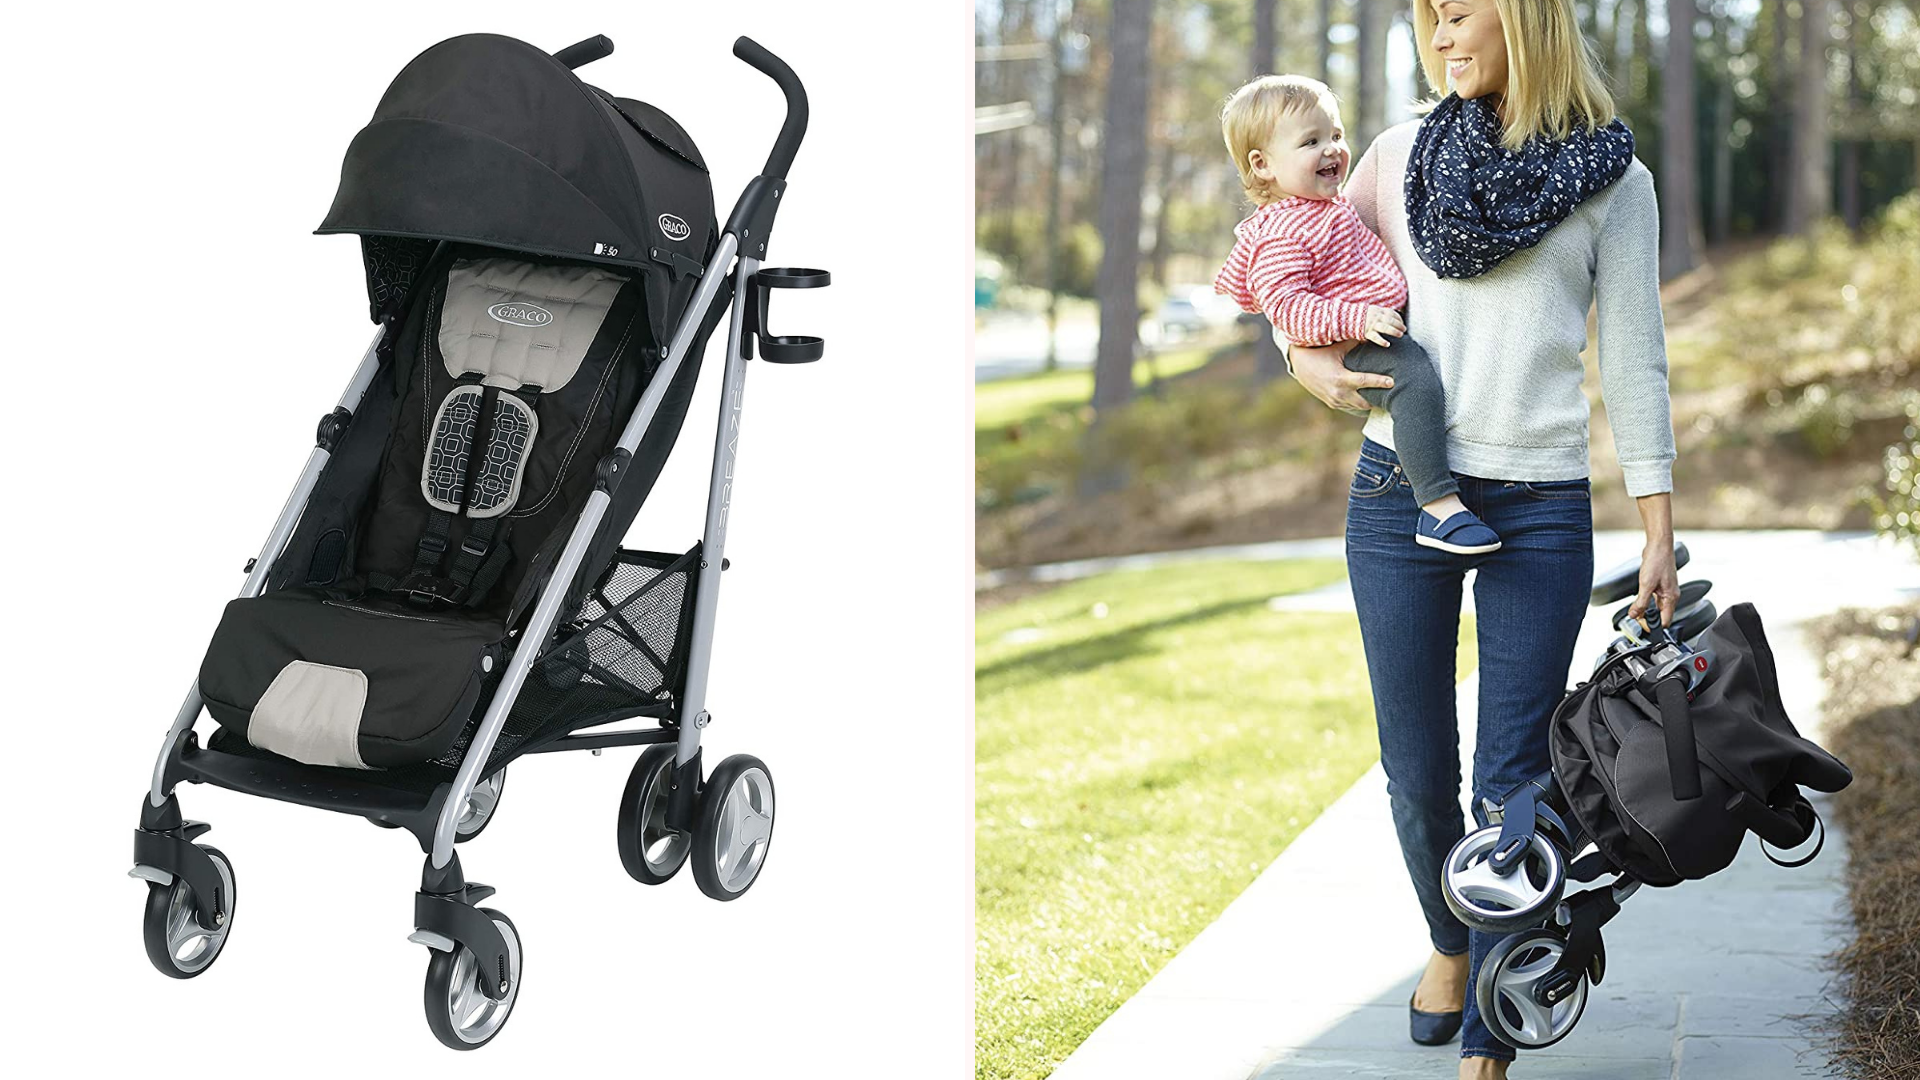 A mother carrying her baby and the Graco Breeze Clicker stroller folded up.